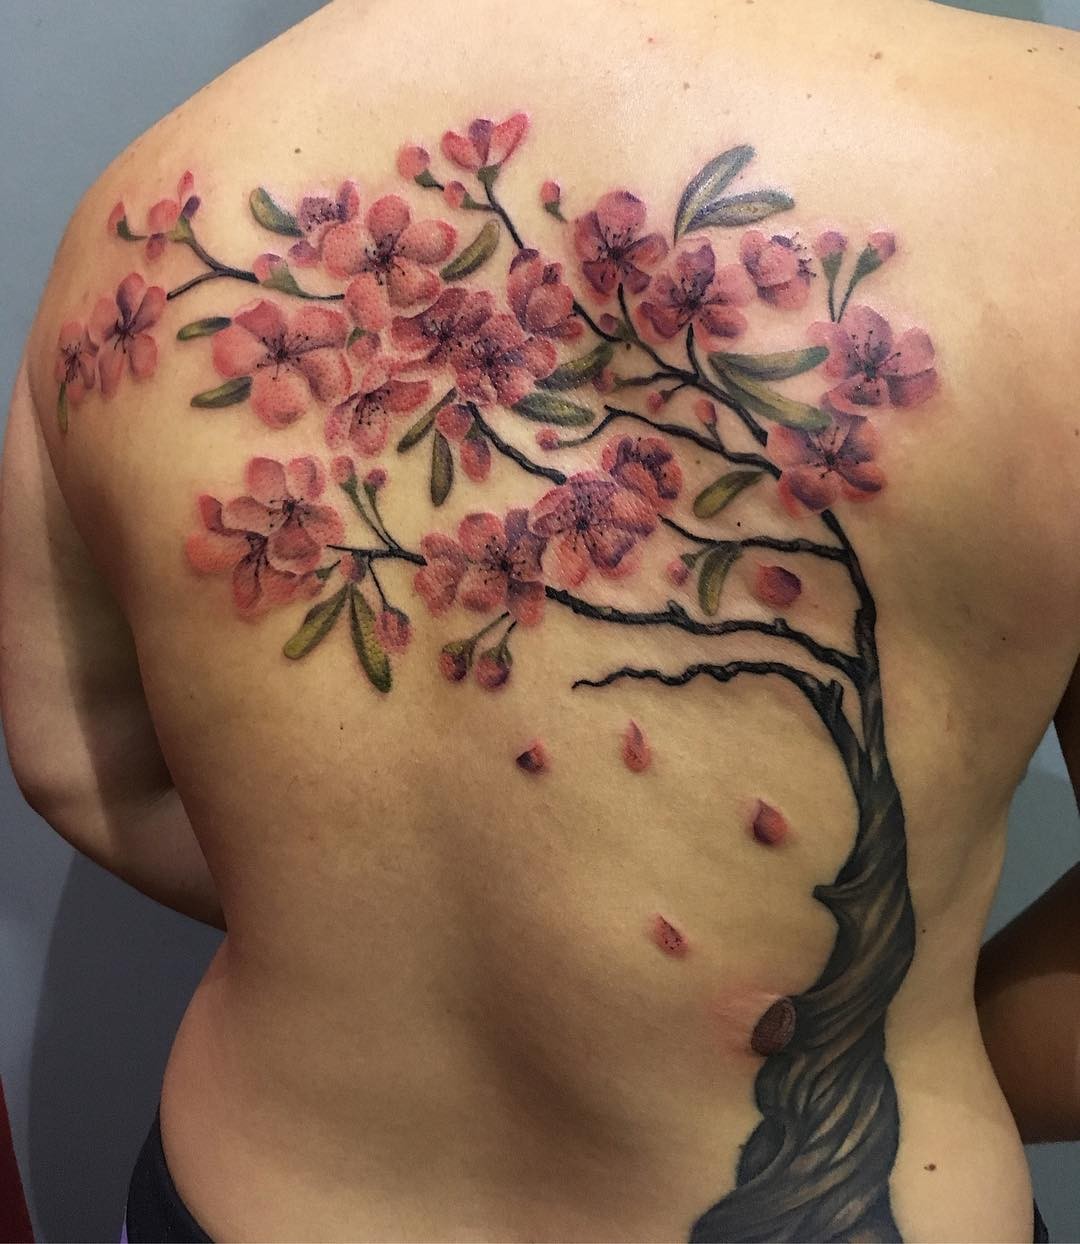 Feminine Cherry Blossom Tattoo Design